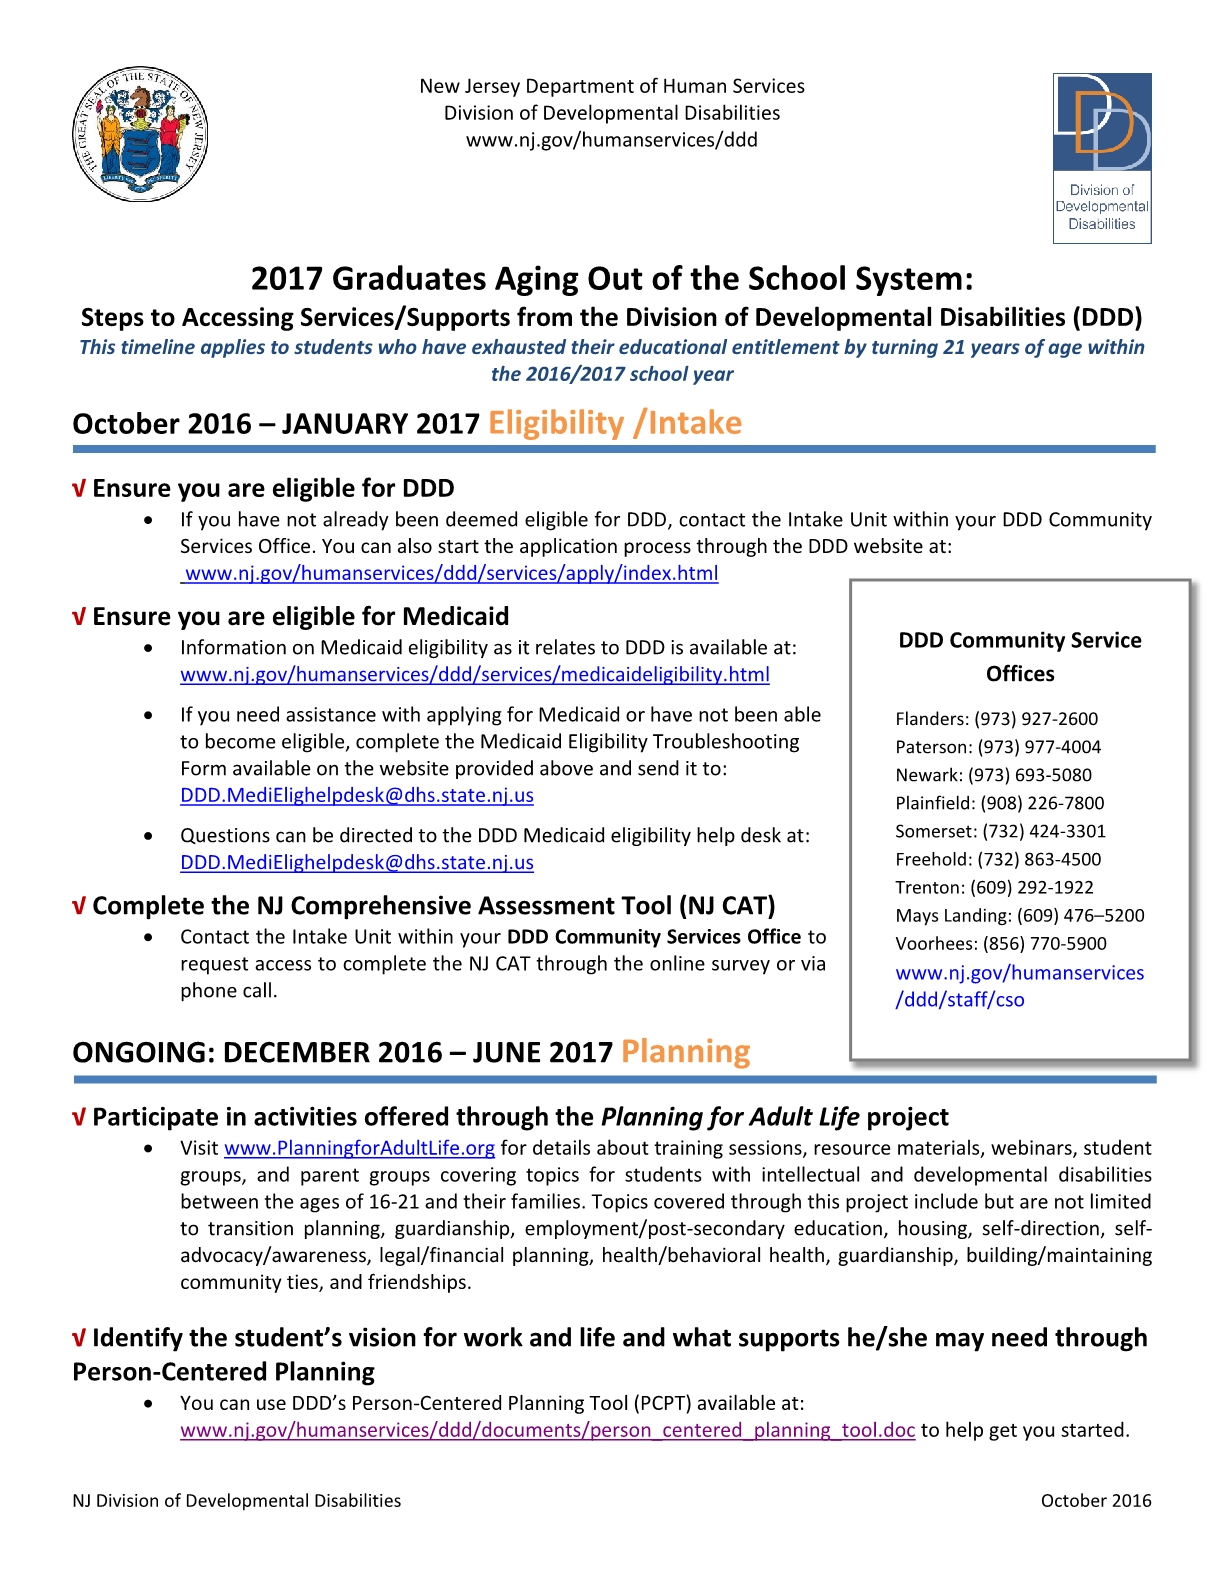 2017 Graduates Aging Out of the School System Timeline